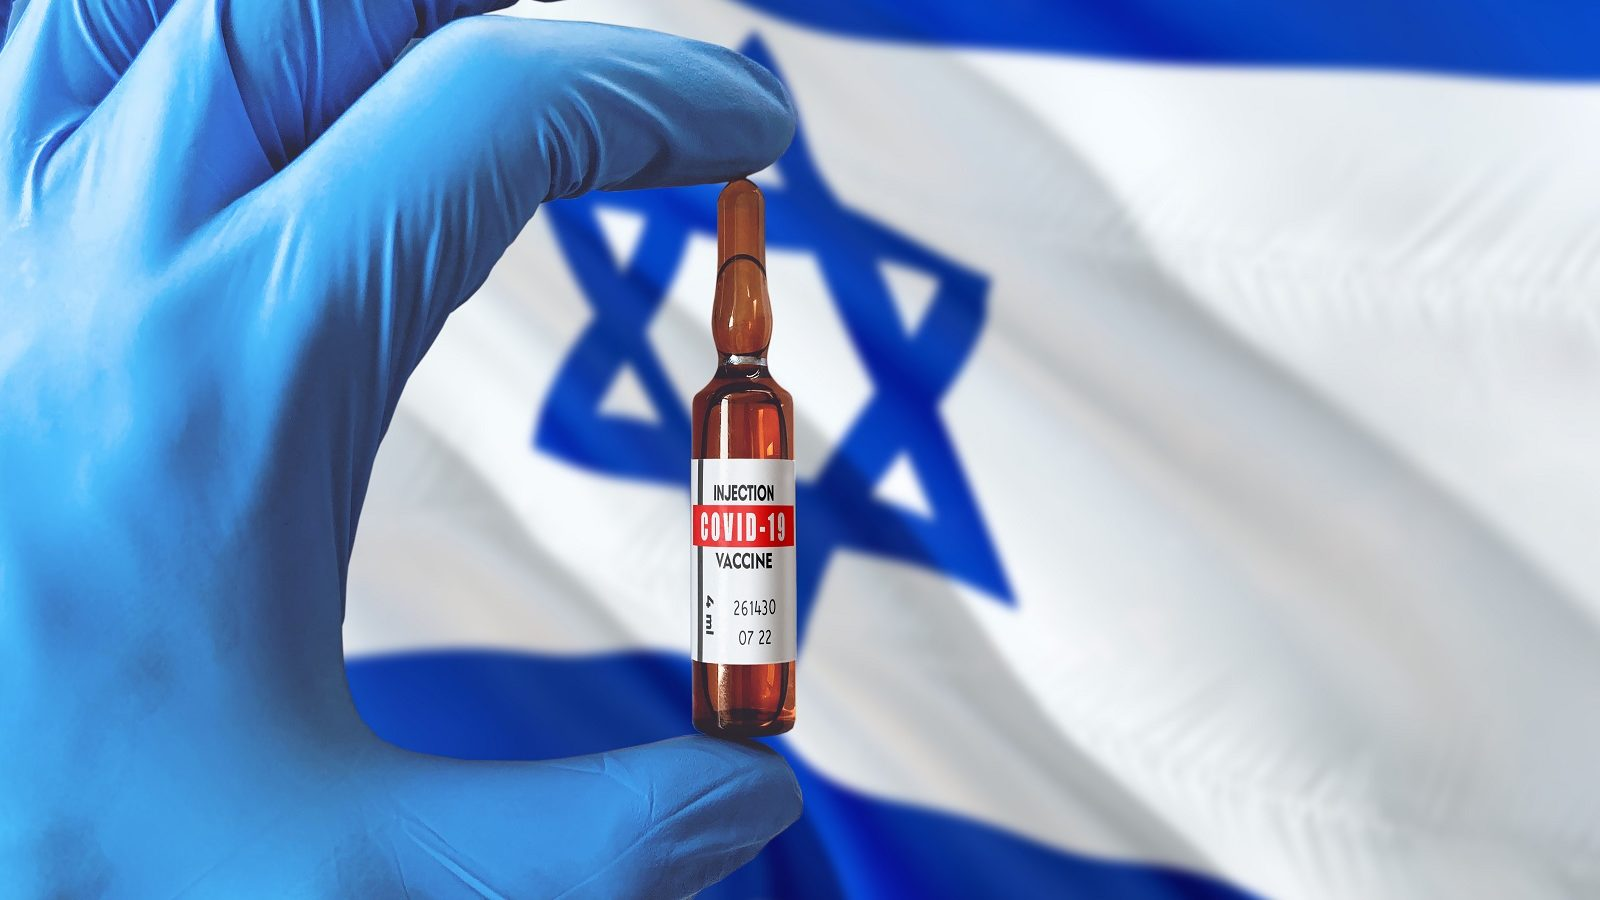 Israel's COVID-19 Vaccine Candidate To Enter Human Trials on Nov 1